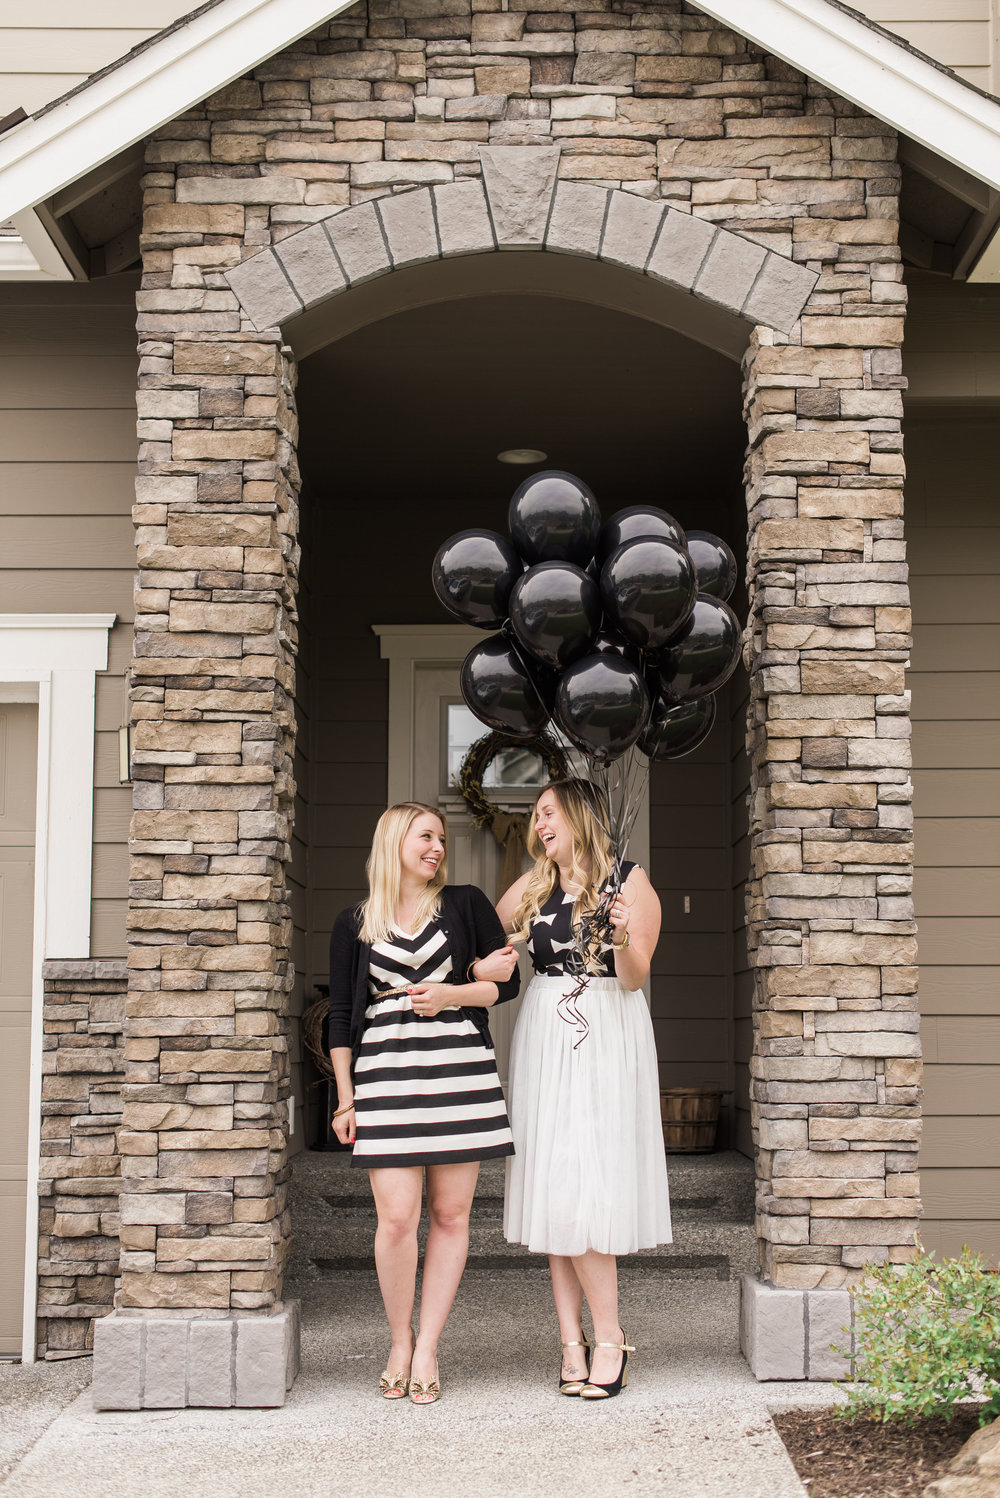 View more of Stacy's Kate Spade Themed Bridal shower-- All rentals available from Snohomish rental co!